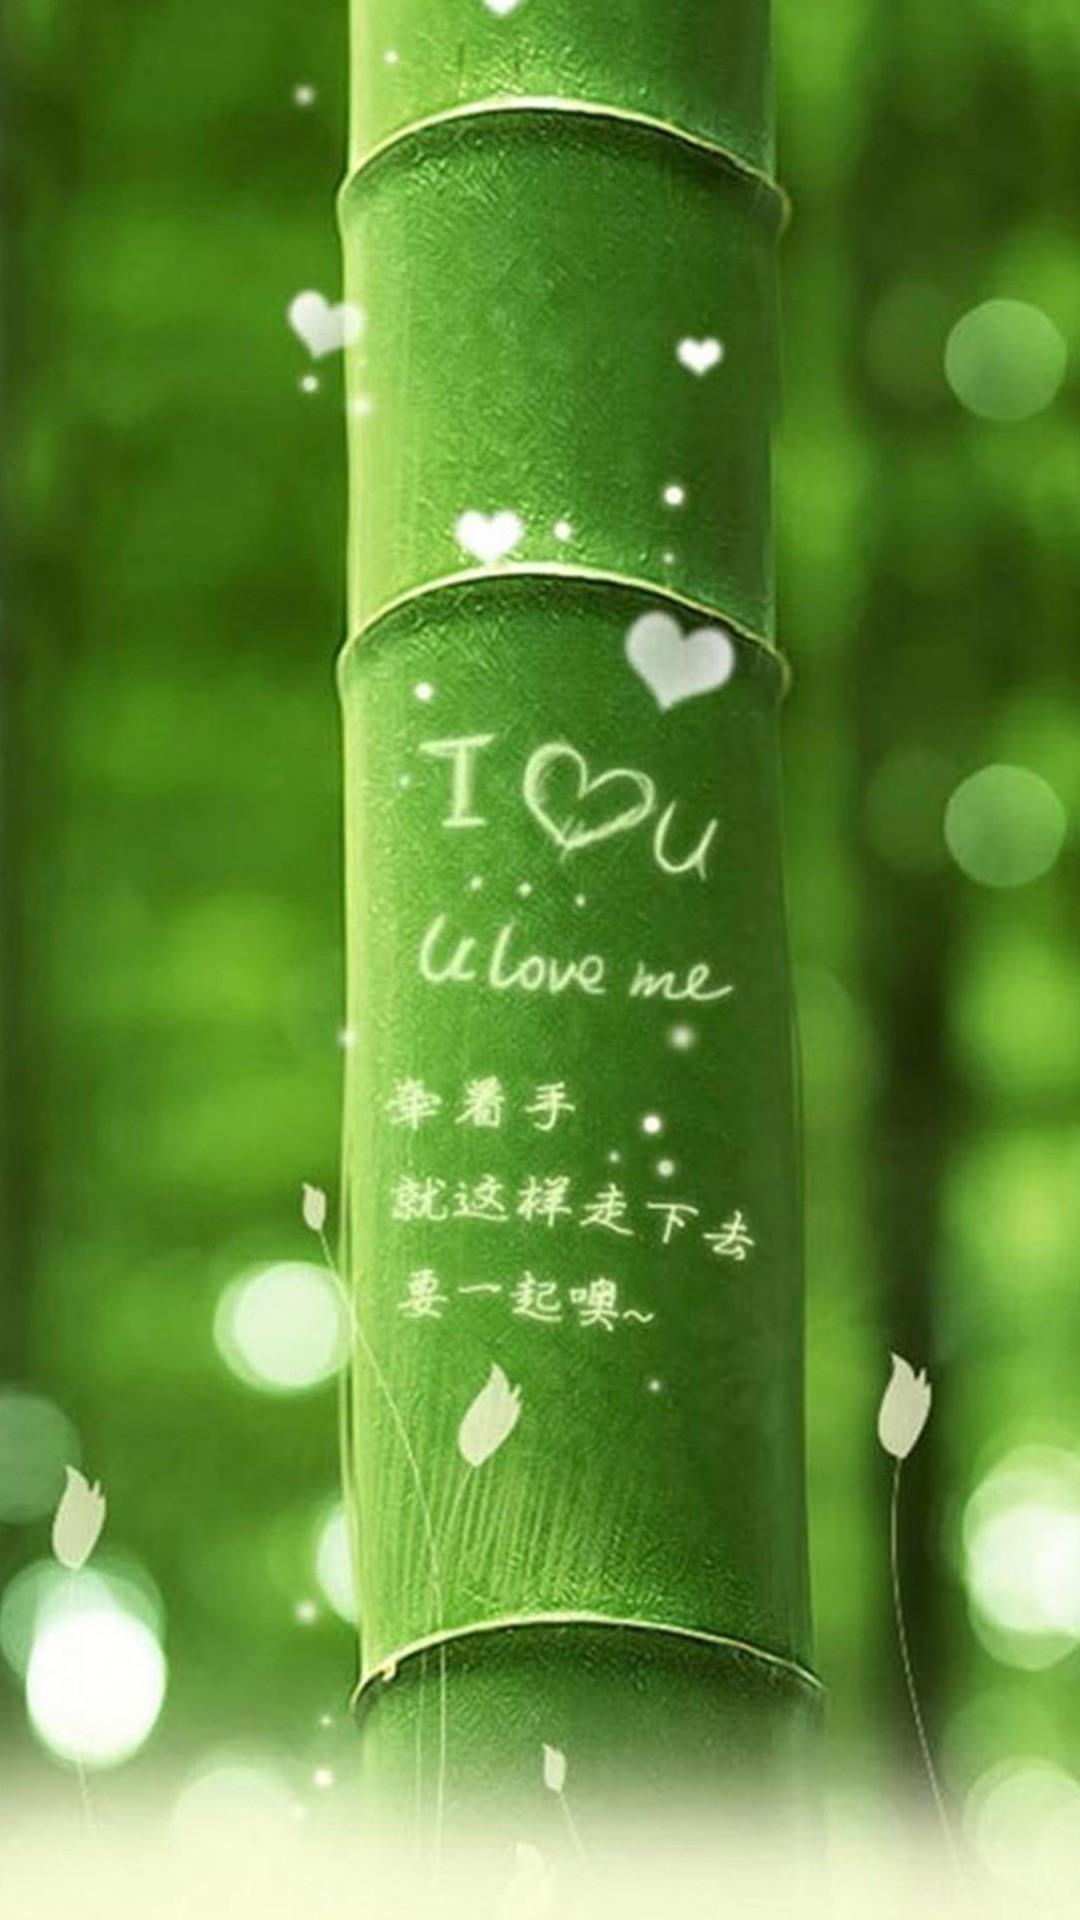 1080x1920 I Love You Green Bamboo iPhone 6 Plus HD Wallpaper ...